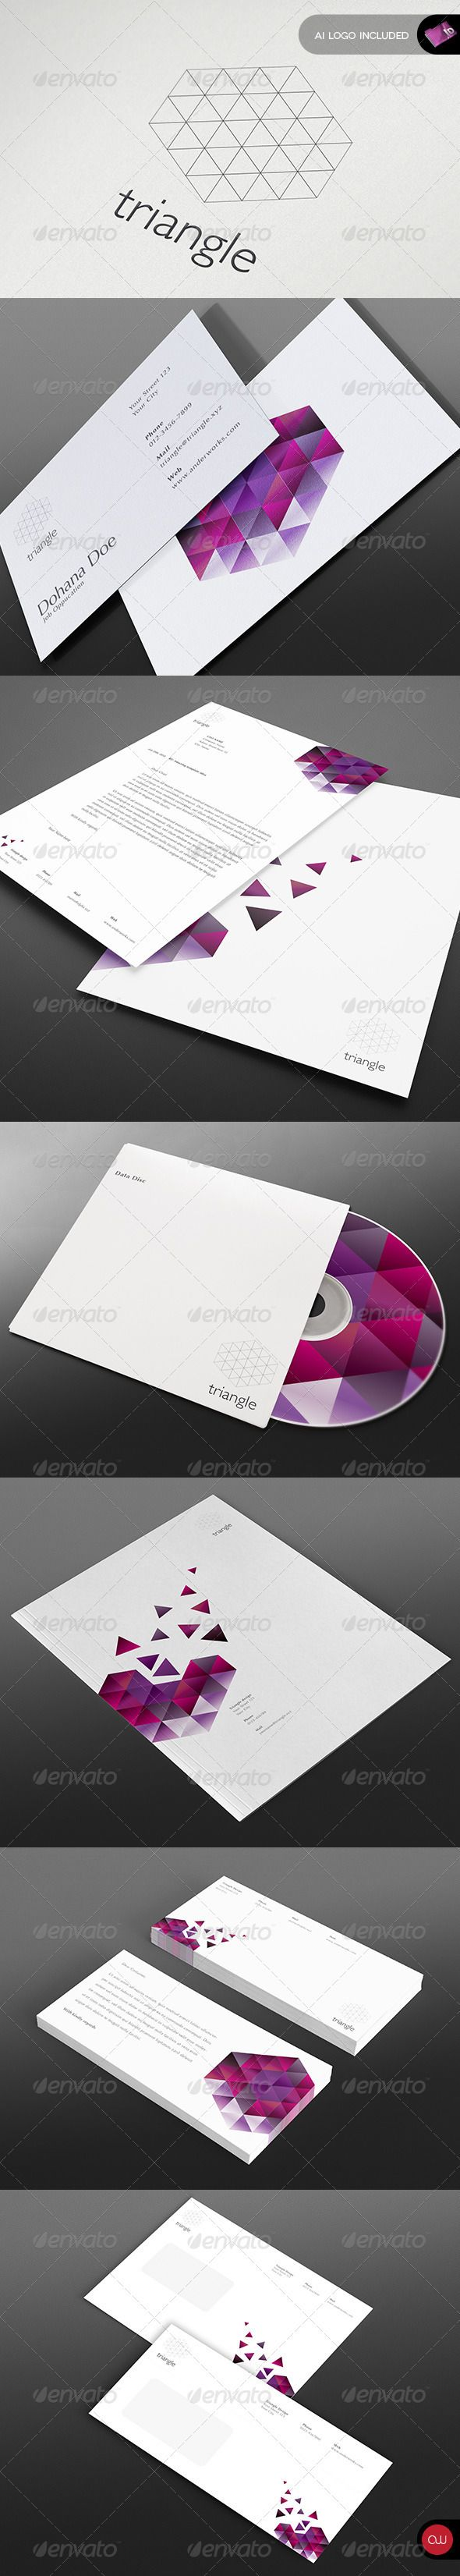 Modern Stationary  - Vol.12  InDesign Template • Download ➝ https://graphicriver.net/item/modern-stationary-template-vol12/2820641?ref=pxcr